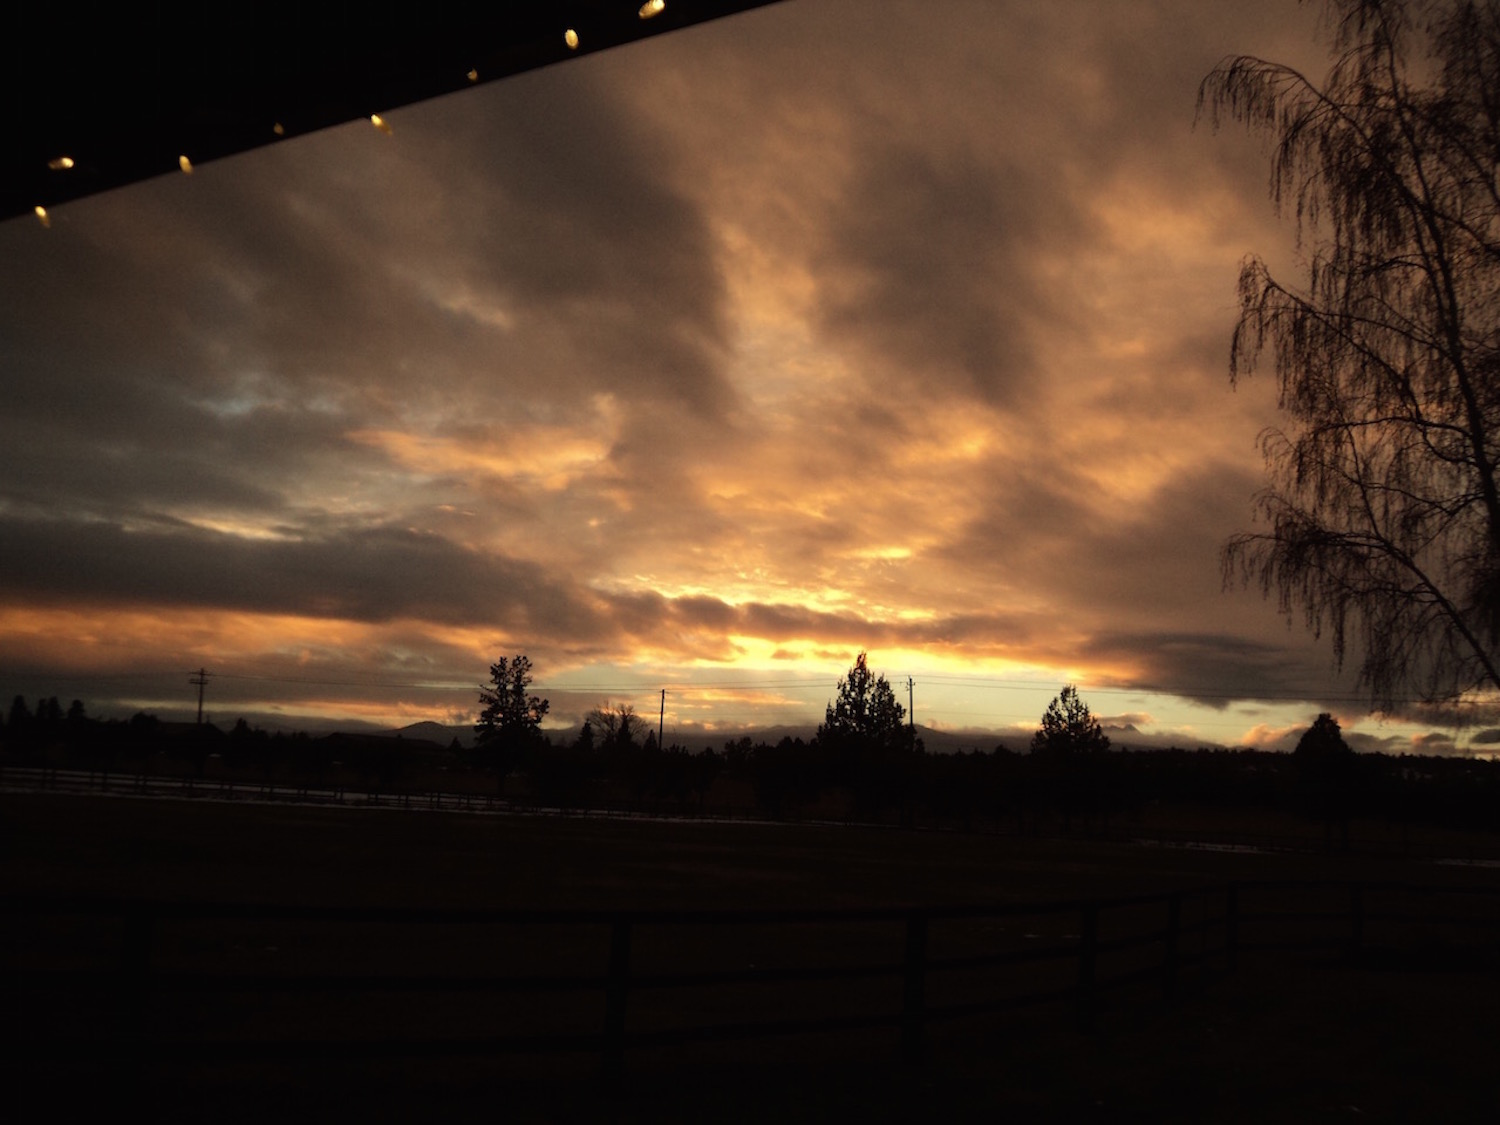 Sunset at Ranch copy.jpg